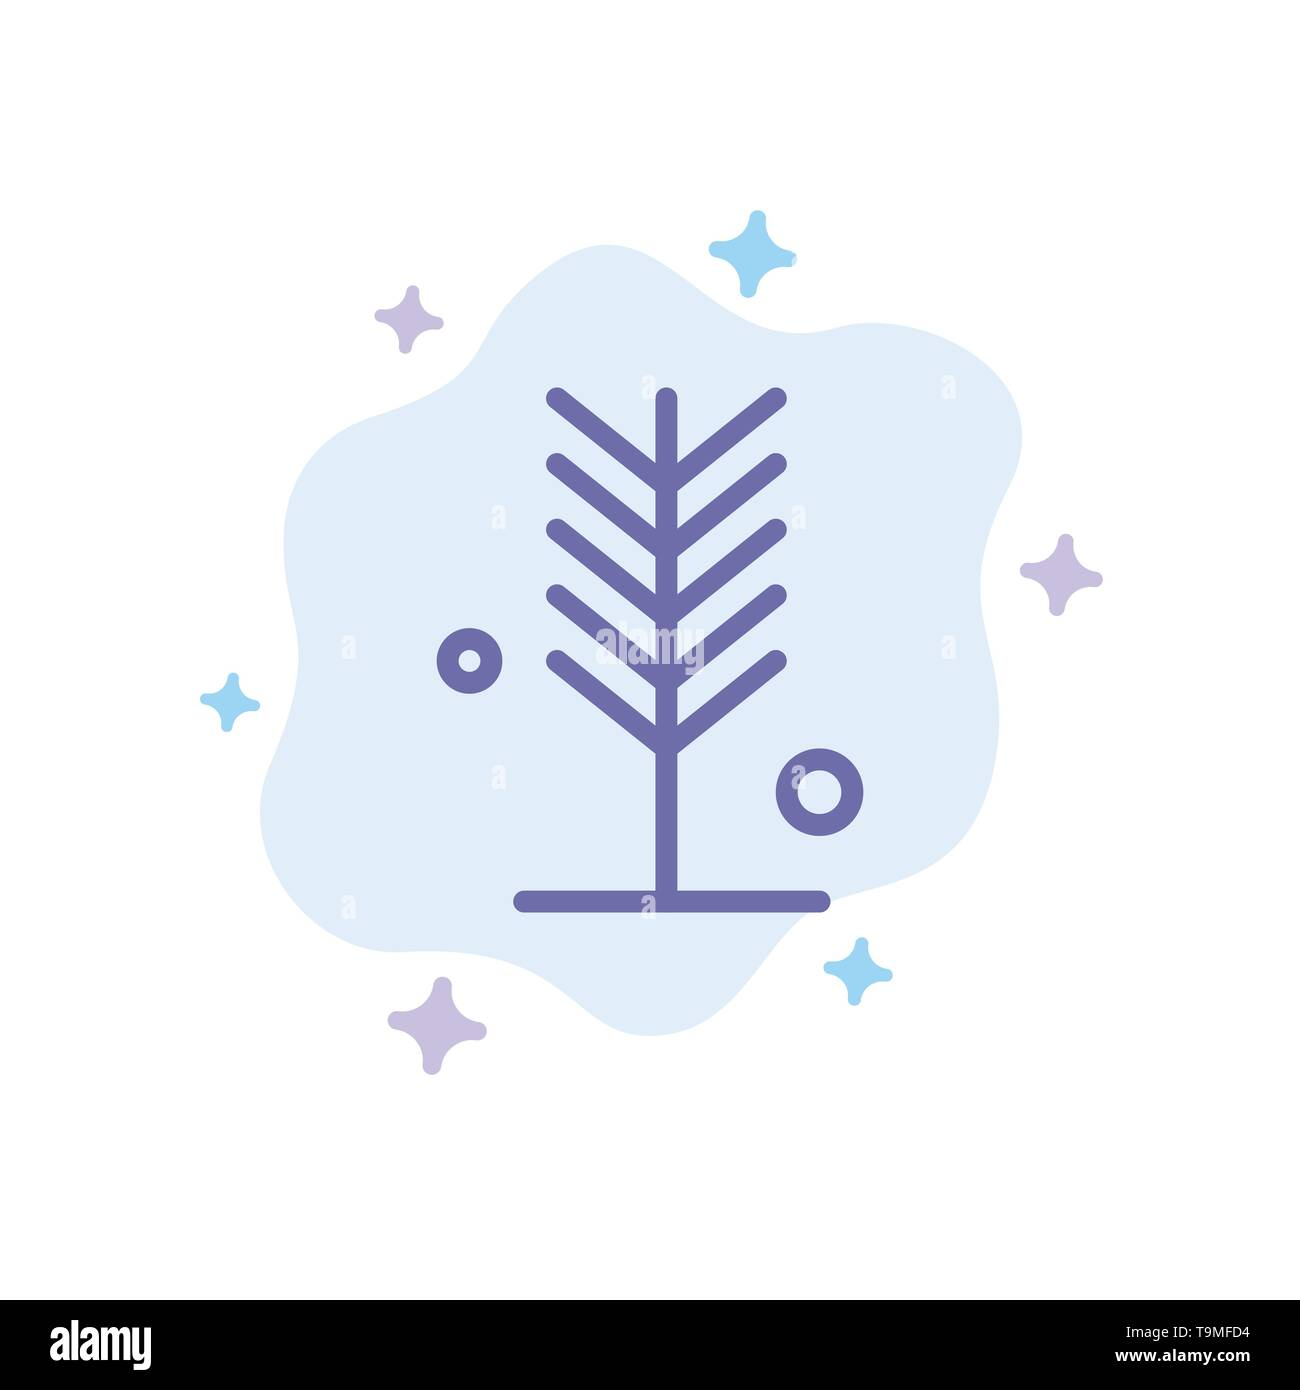 Eco, Environment, Nature, Summer, Tree Blue Icon on Abstract Cloud Background - Stock Image